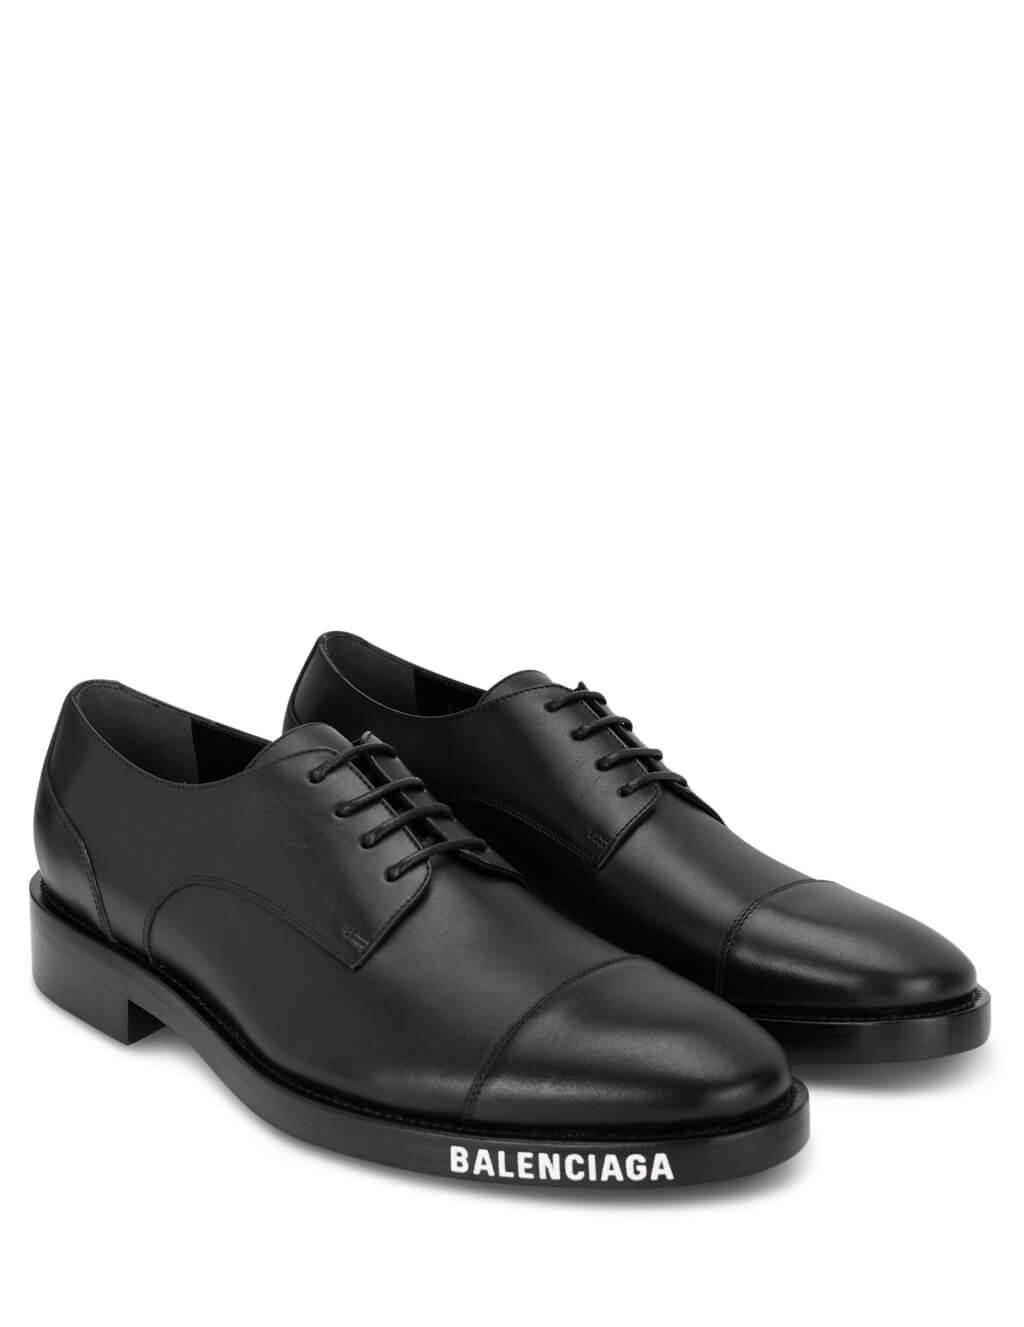 Balenciaga Men's Black Leather Logo Print Derby Shoes 590716WA6F01000